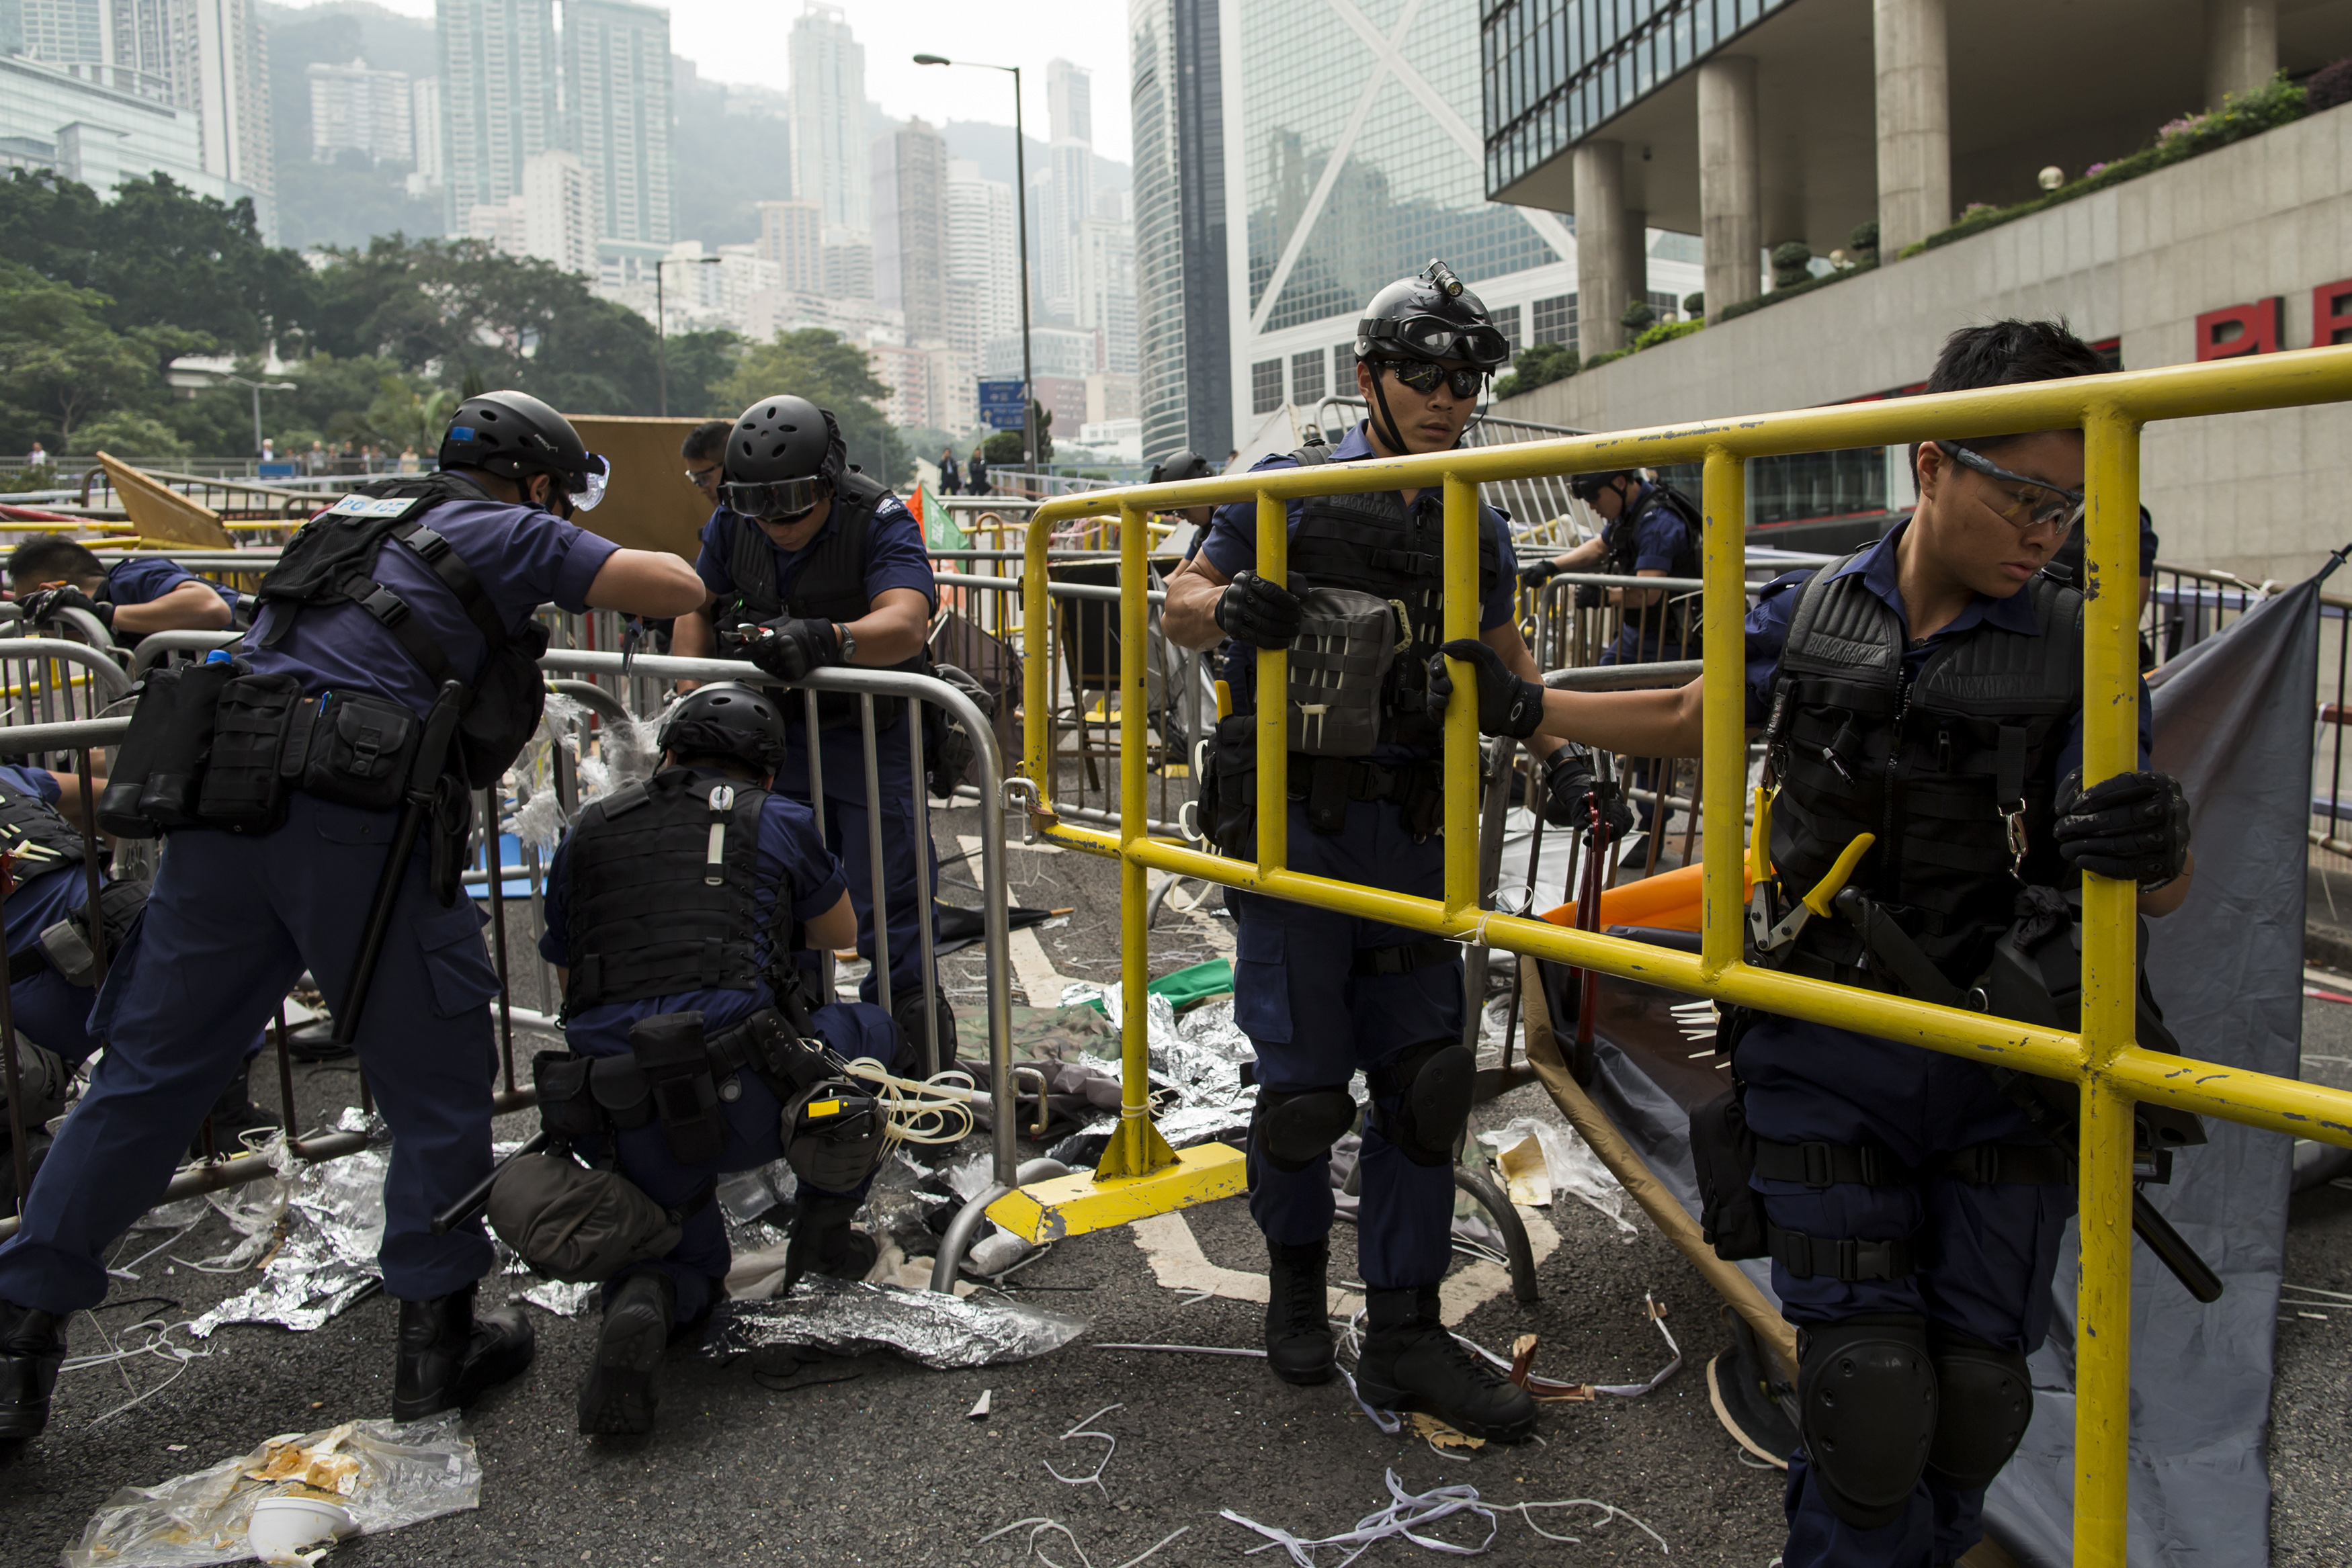 Police officers remove barricades at an area previously blocked by pro-democracy supporters near the government headquarters building at the financial Central district in Hong Kong